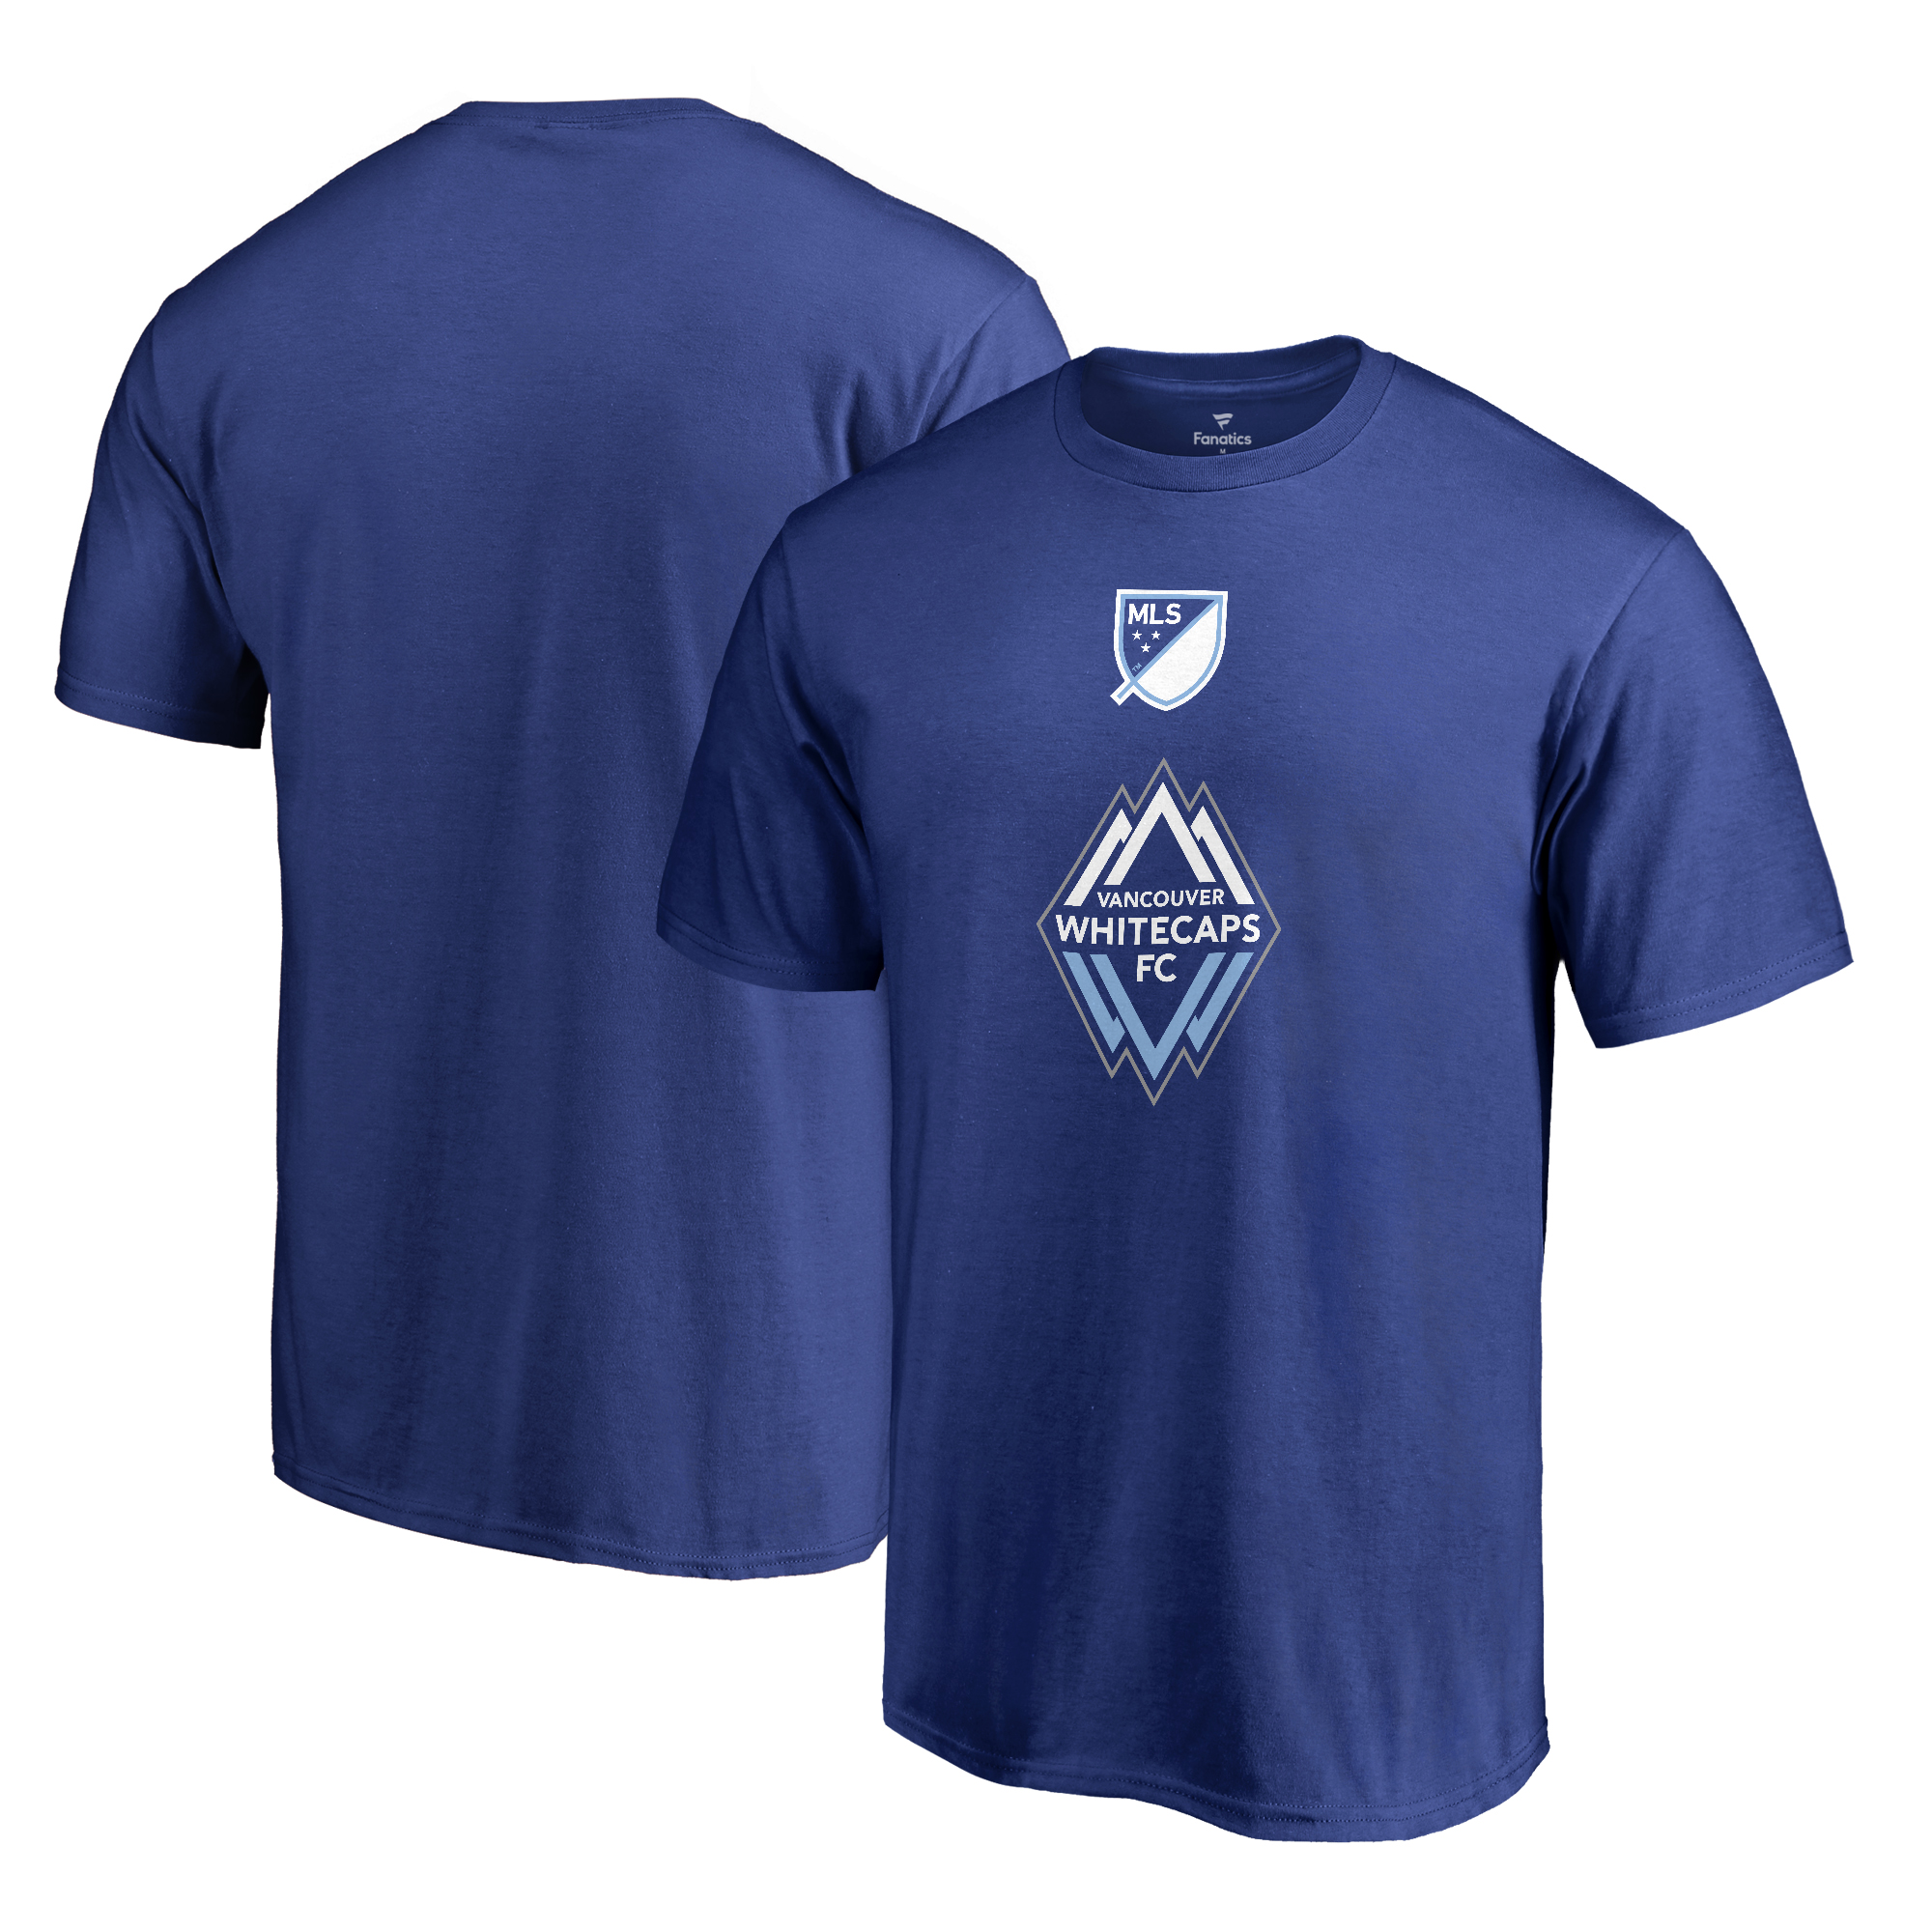 Vancouver Whitecaps FC Fanatics Branded Shielded T-Shirt - Royal